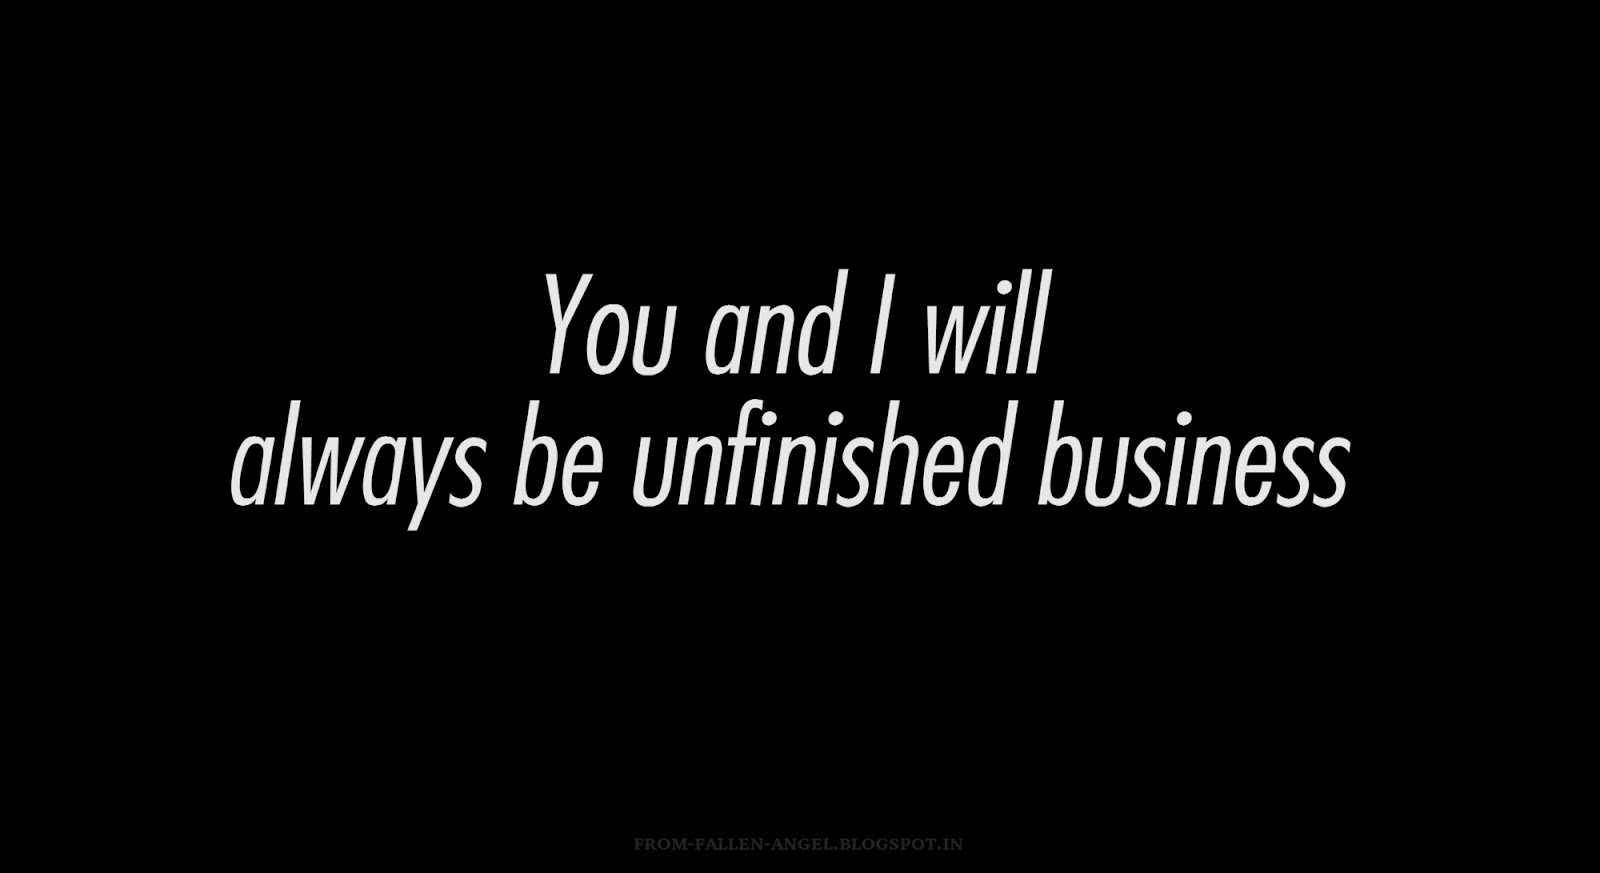 You and I will always be unfinished business